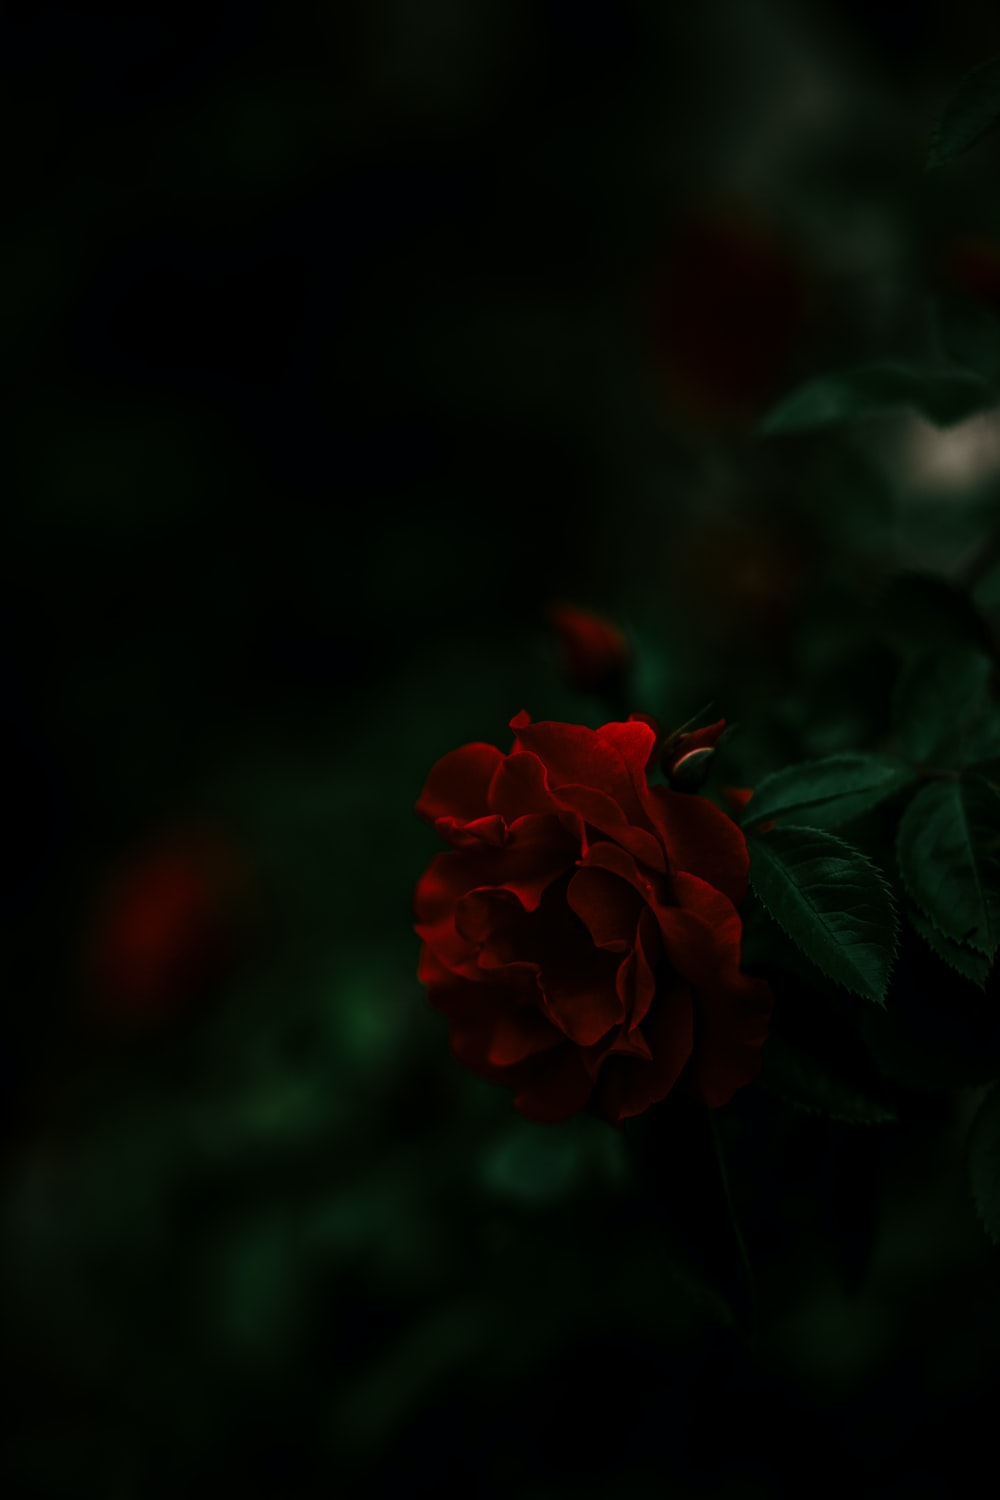 close up photography of red rose flower during daytime